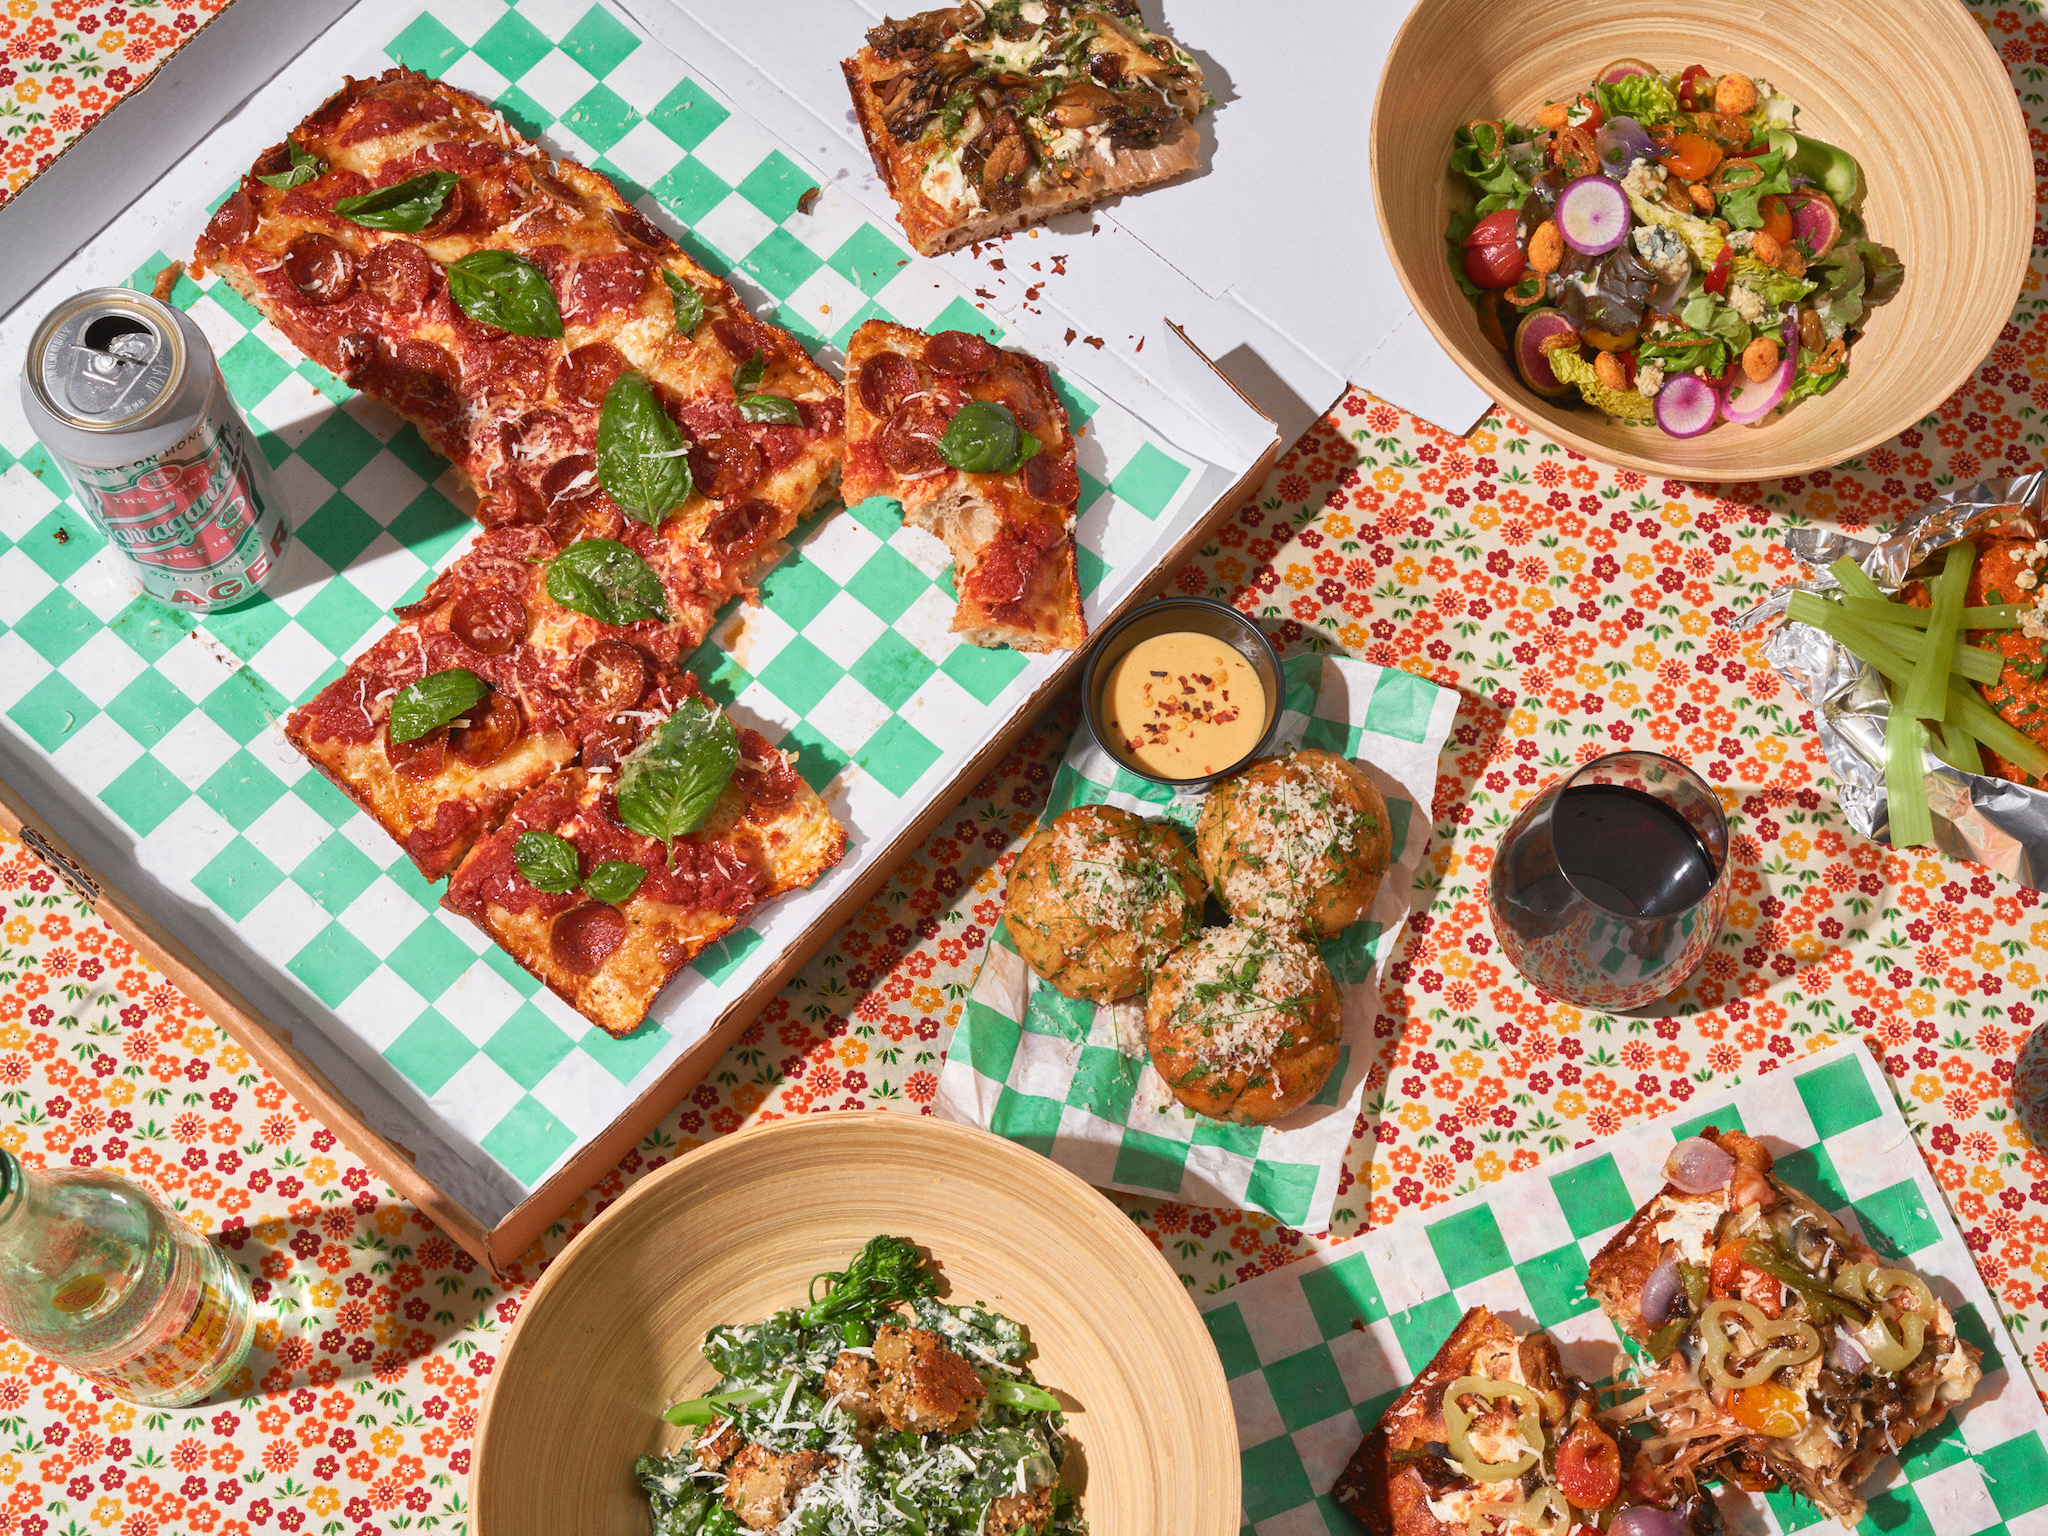 Instagram sensation Old Greg's Pizza is finally opening its pop-up